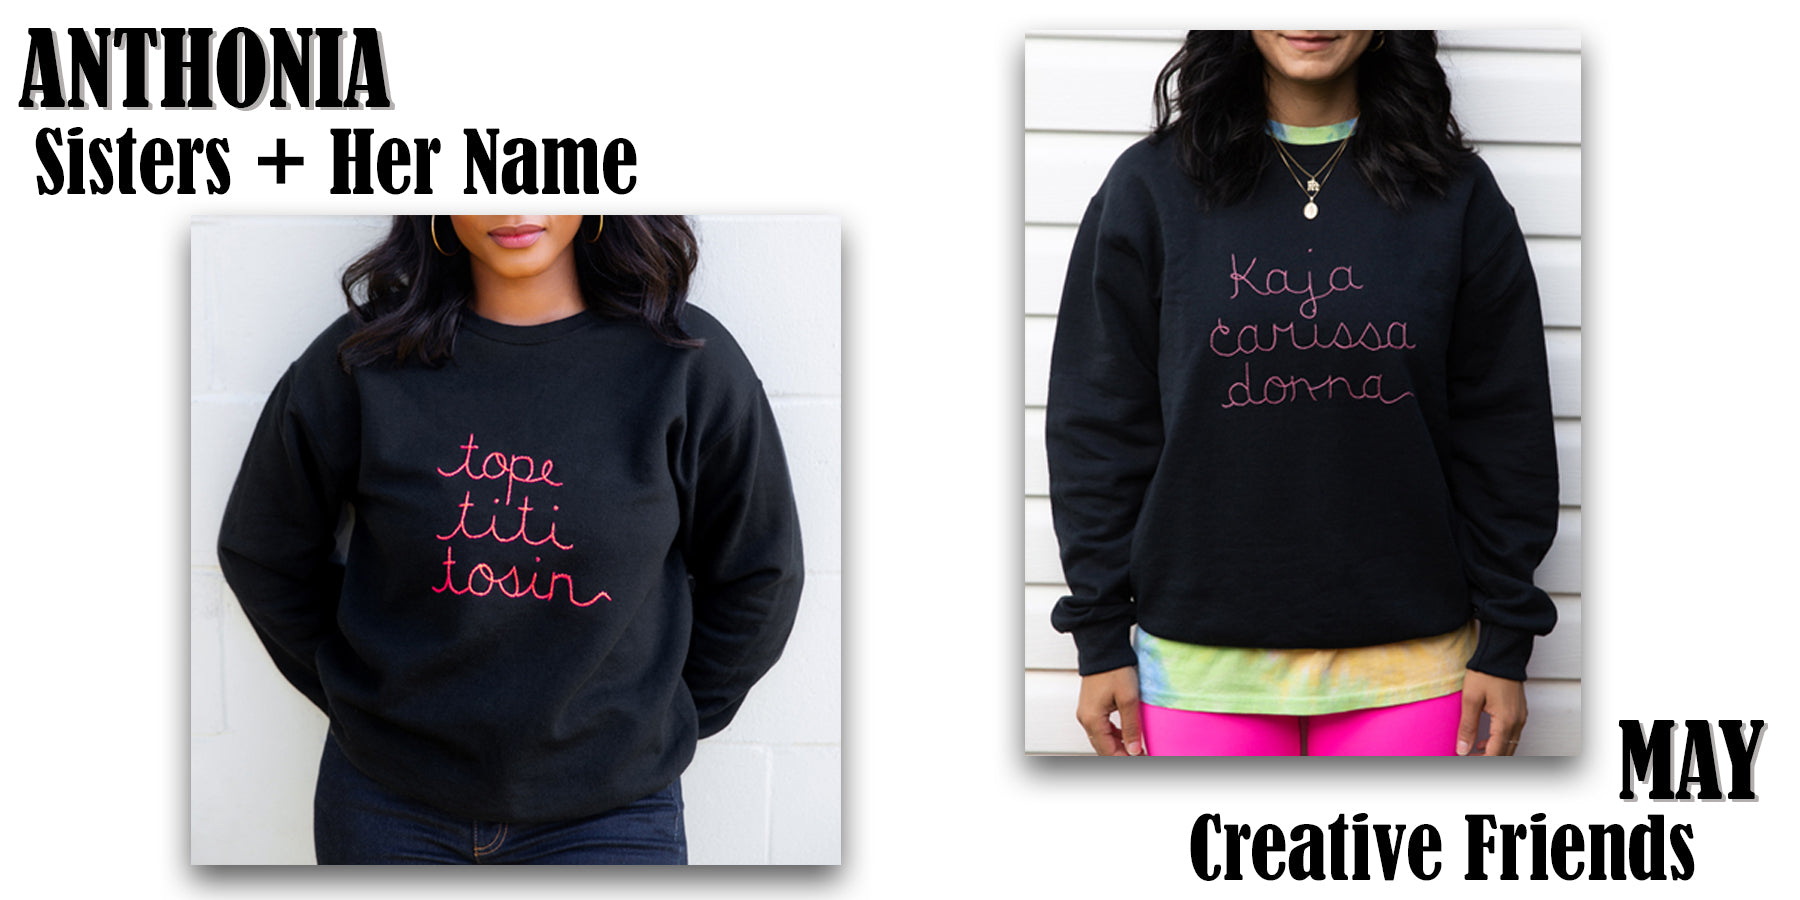 customized femme sweater, choose 3 women who have influenced you and have them stitched on a sweater